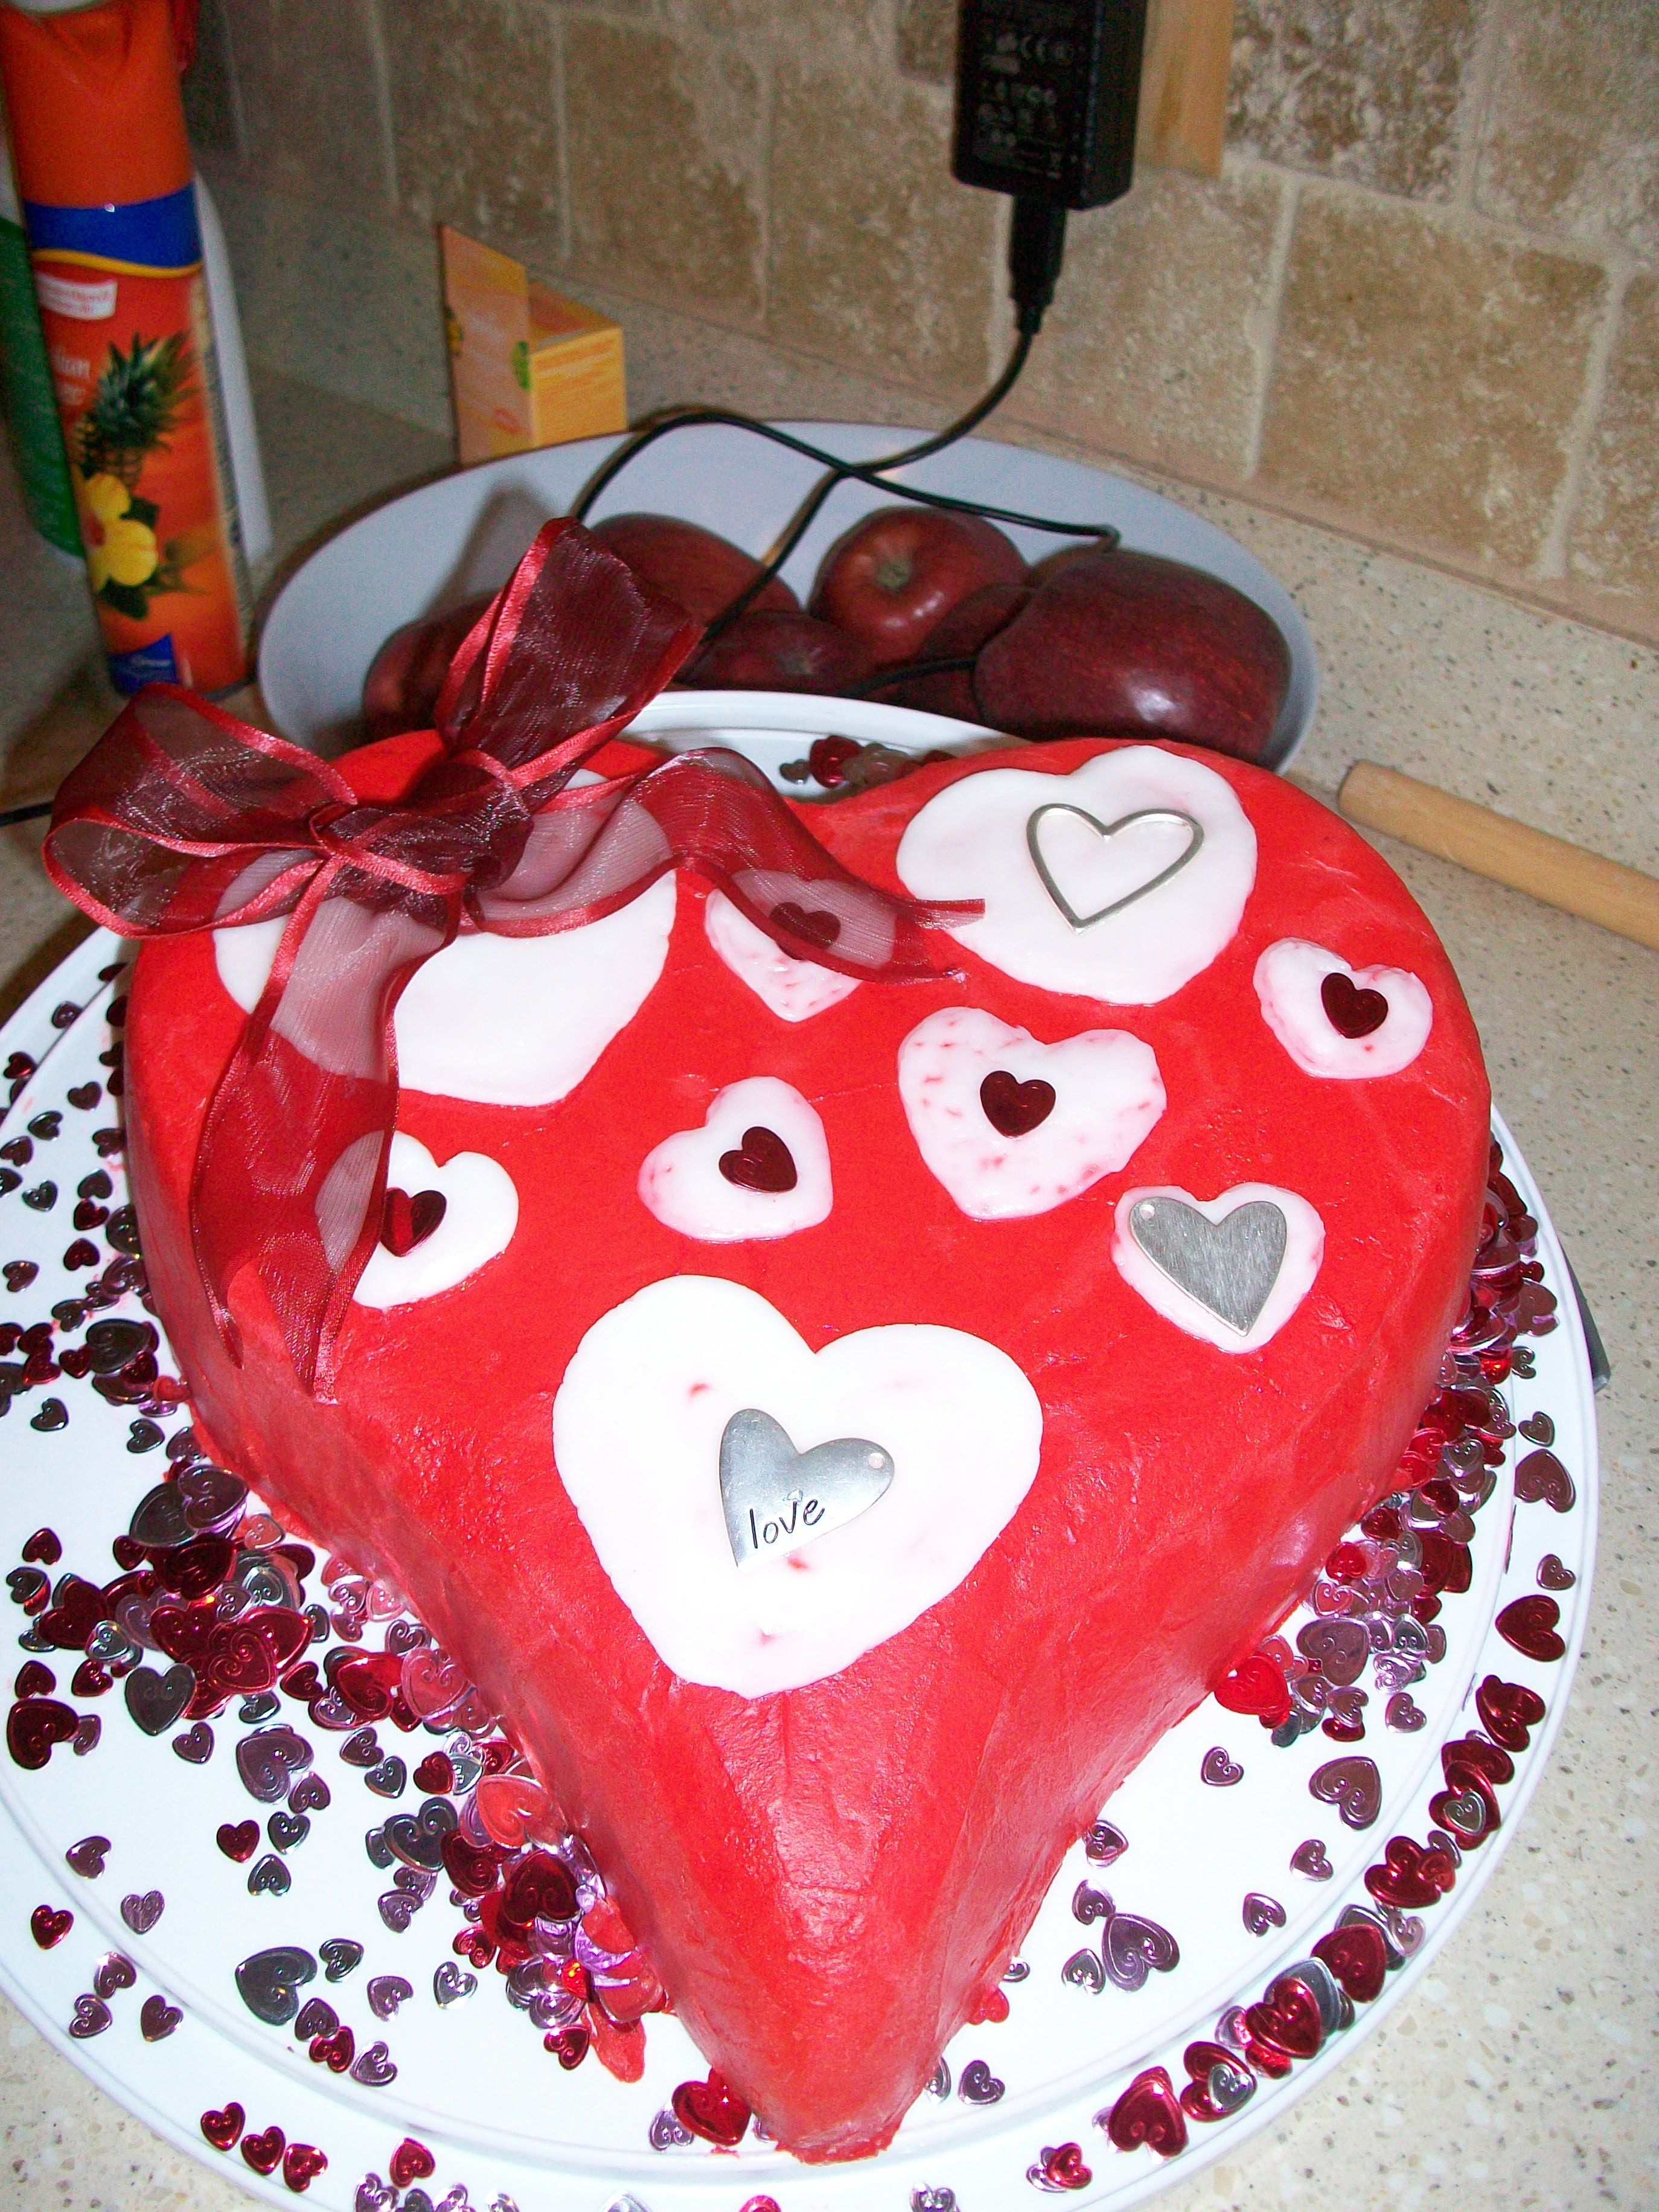 Heart Cake Buttercream icing with buttercream hearts, wire ribbon for bow